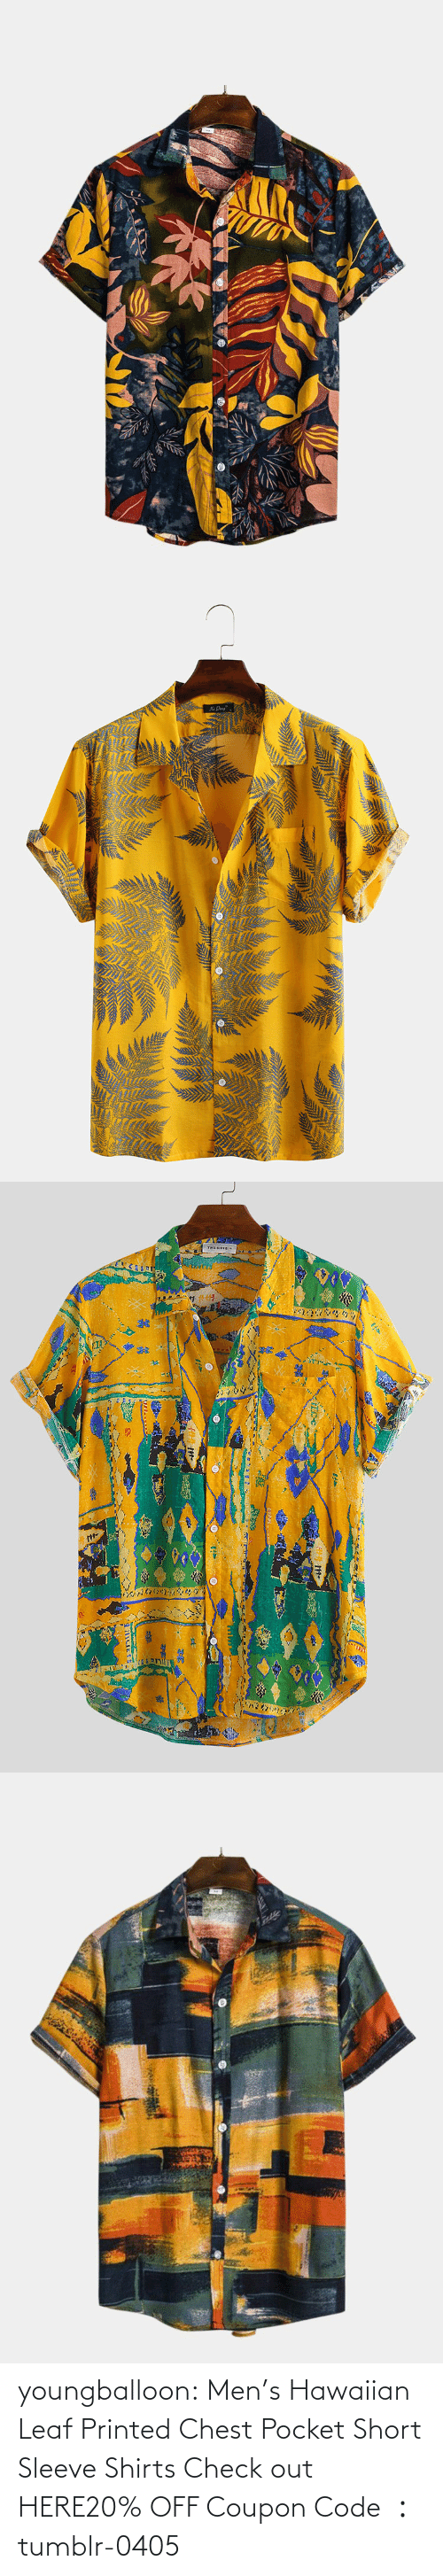 men: youngballoon:  Men's Hawaiian Leaf Printed Chest Pocket Short Sleeve Shirts Check out HERE20% OFF Coupon Code : tumblr-0405